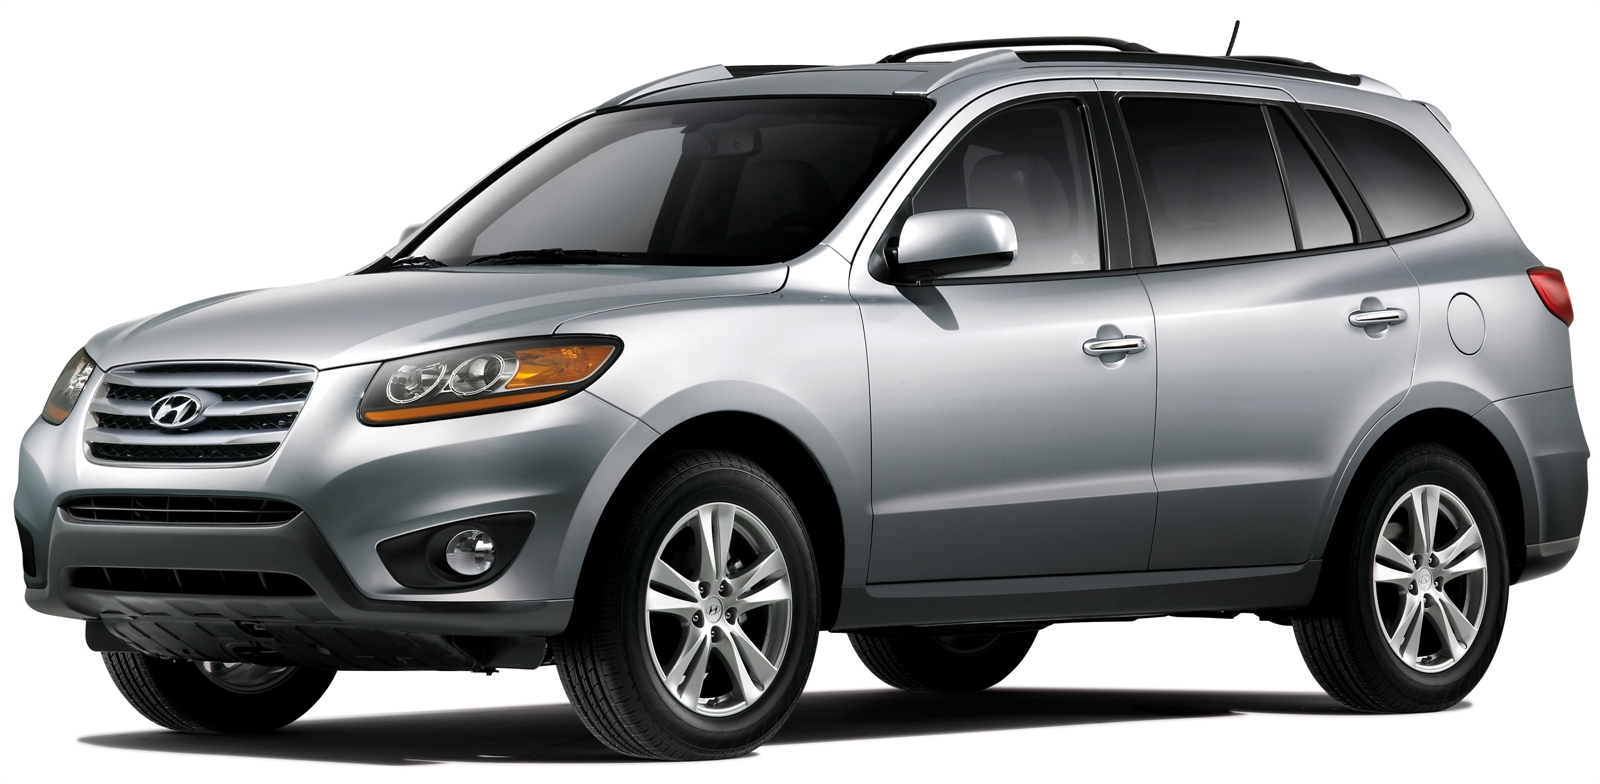 2012 hyundai santa fe review ratings specs prices and photos the. Black Bedroom Furniture Sets. Home Design Ideas